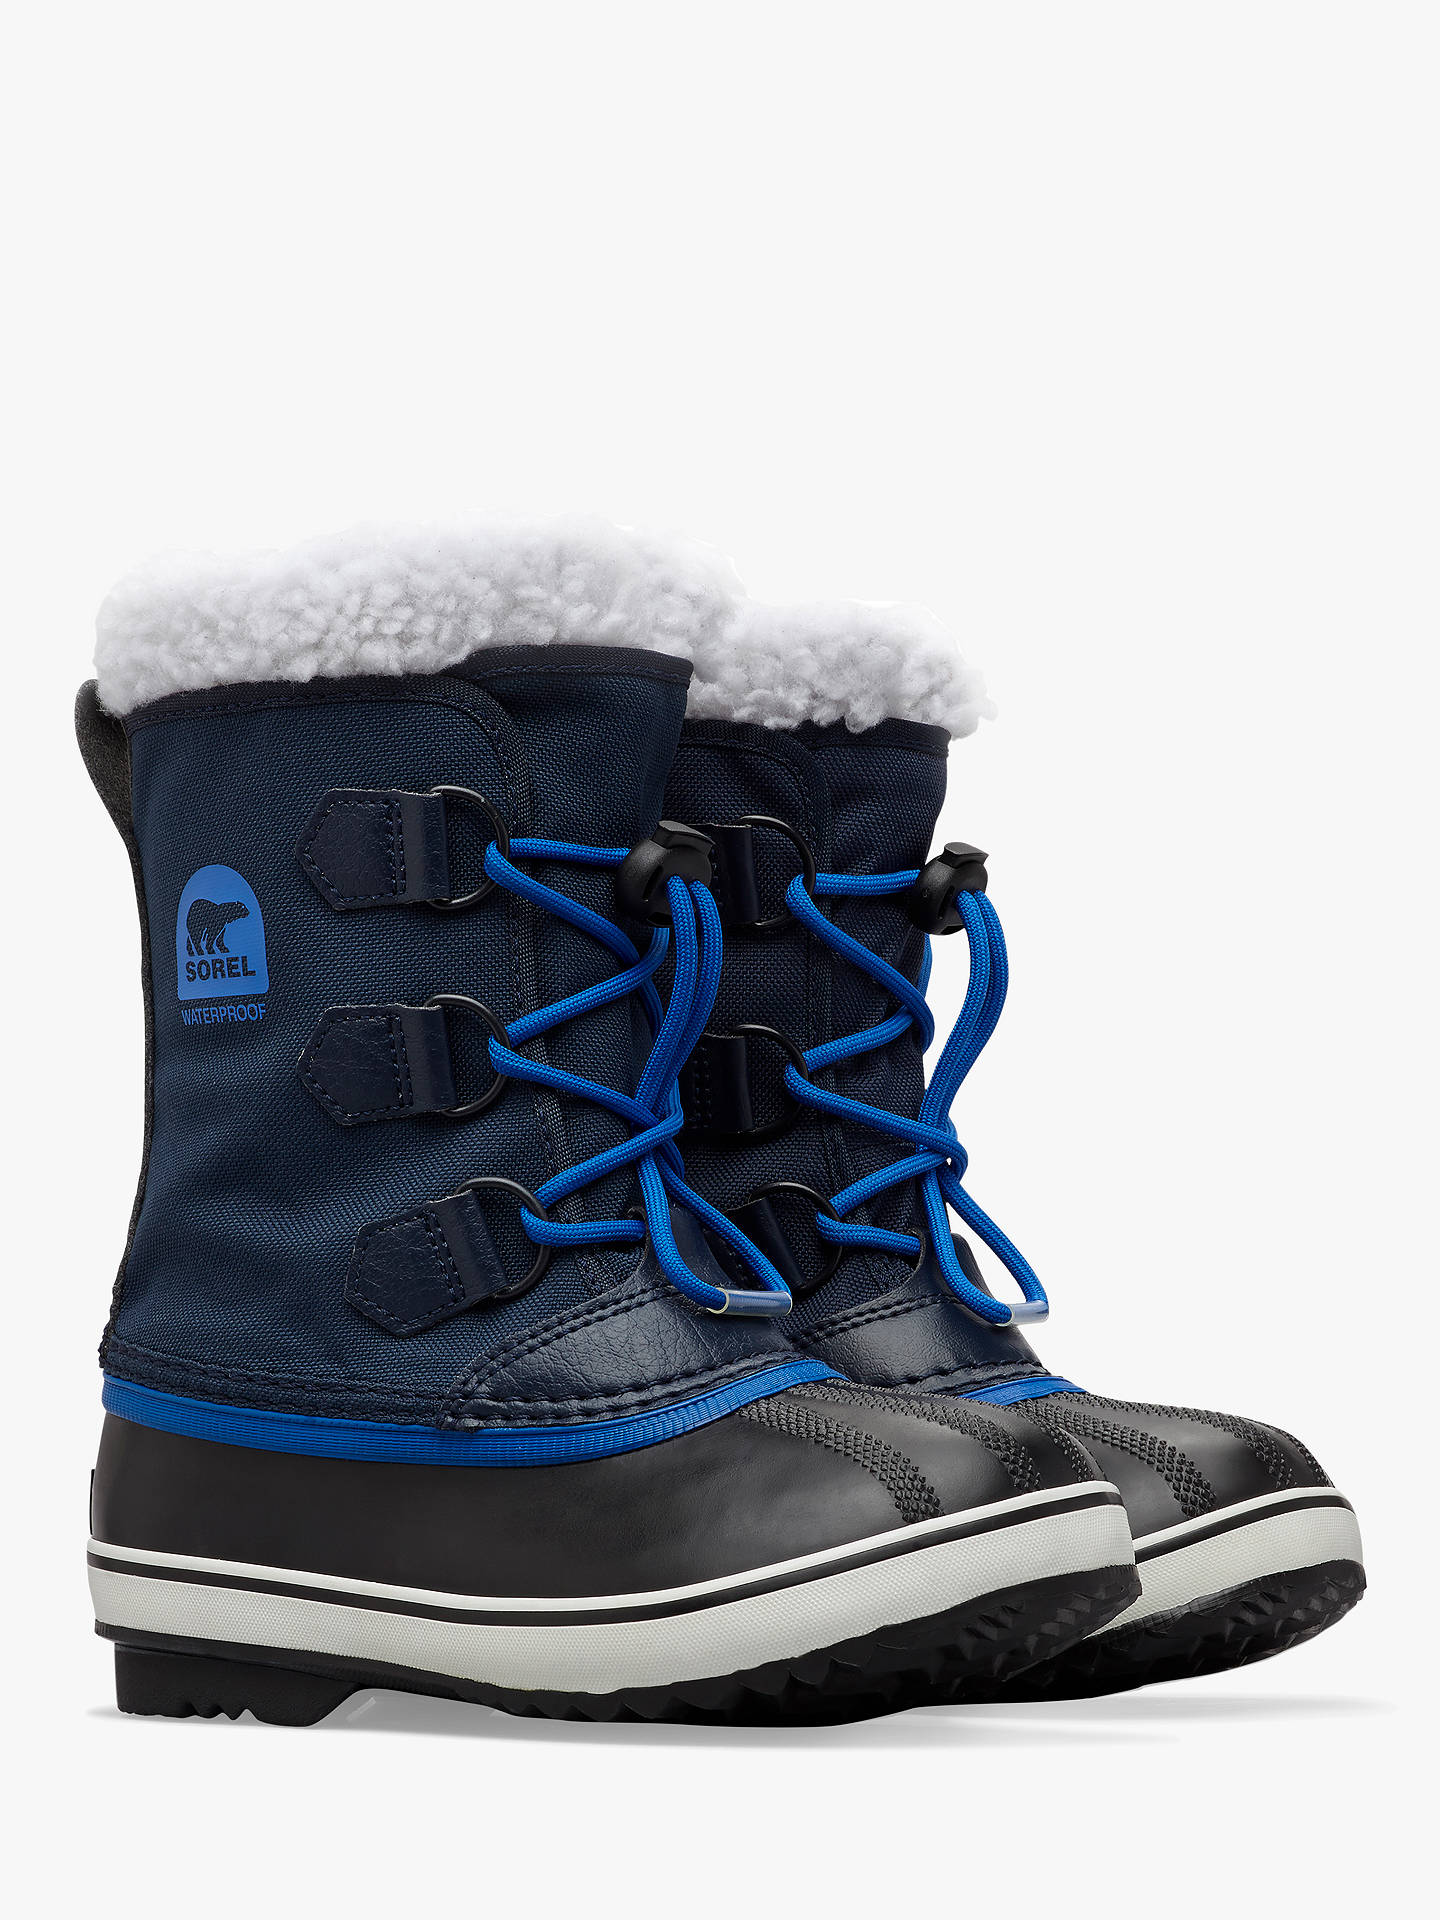 8feaa11cf0d Sorel Children's Yoot Pac Snow Boots at John Lewis & Partners